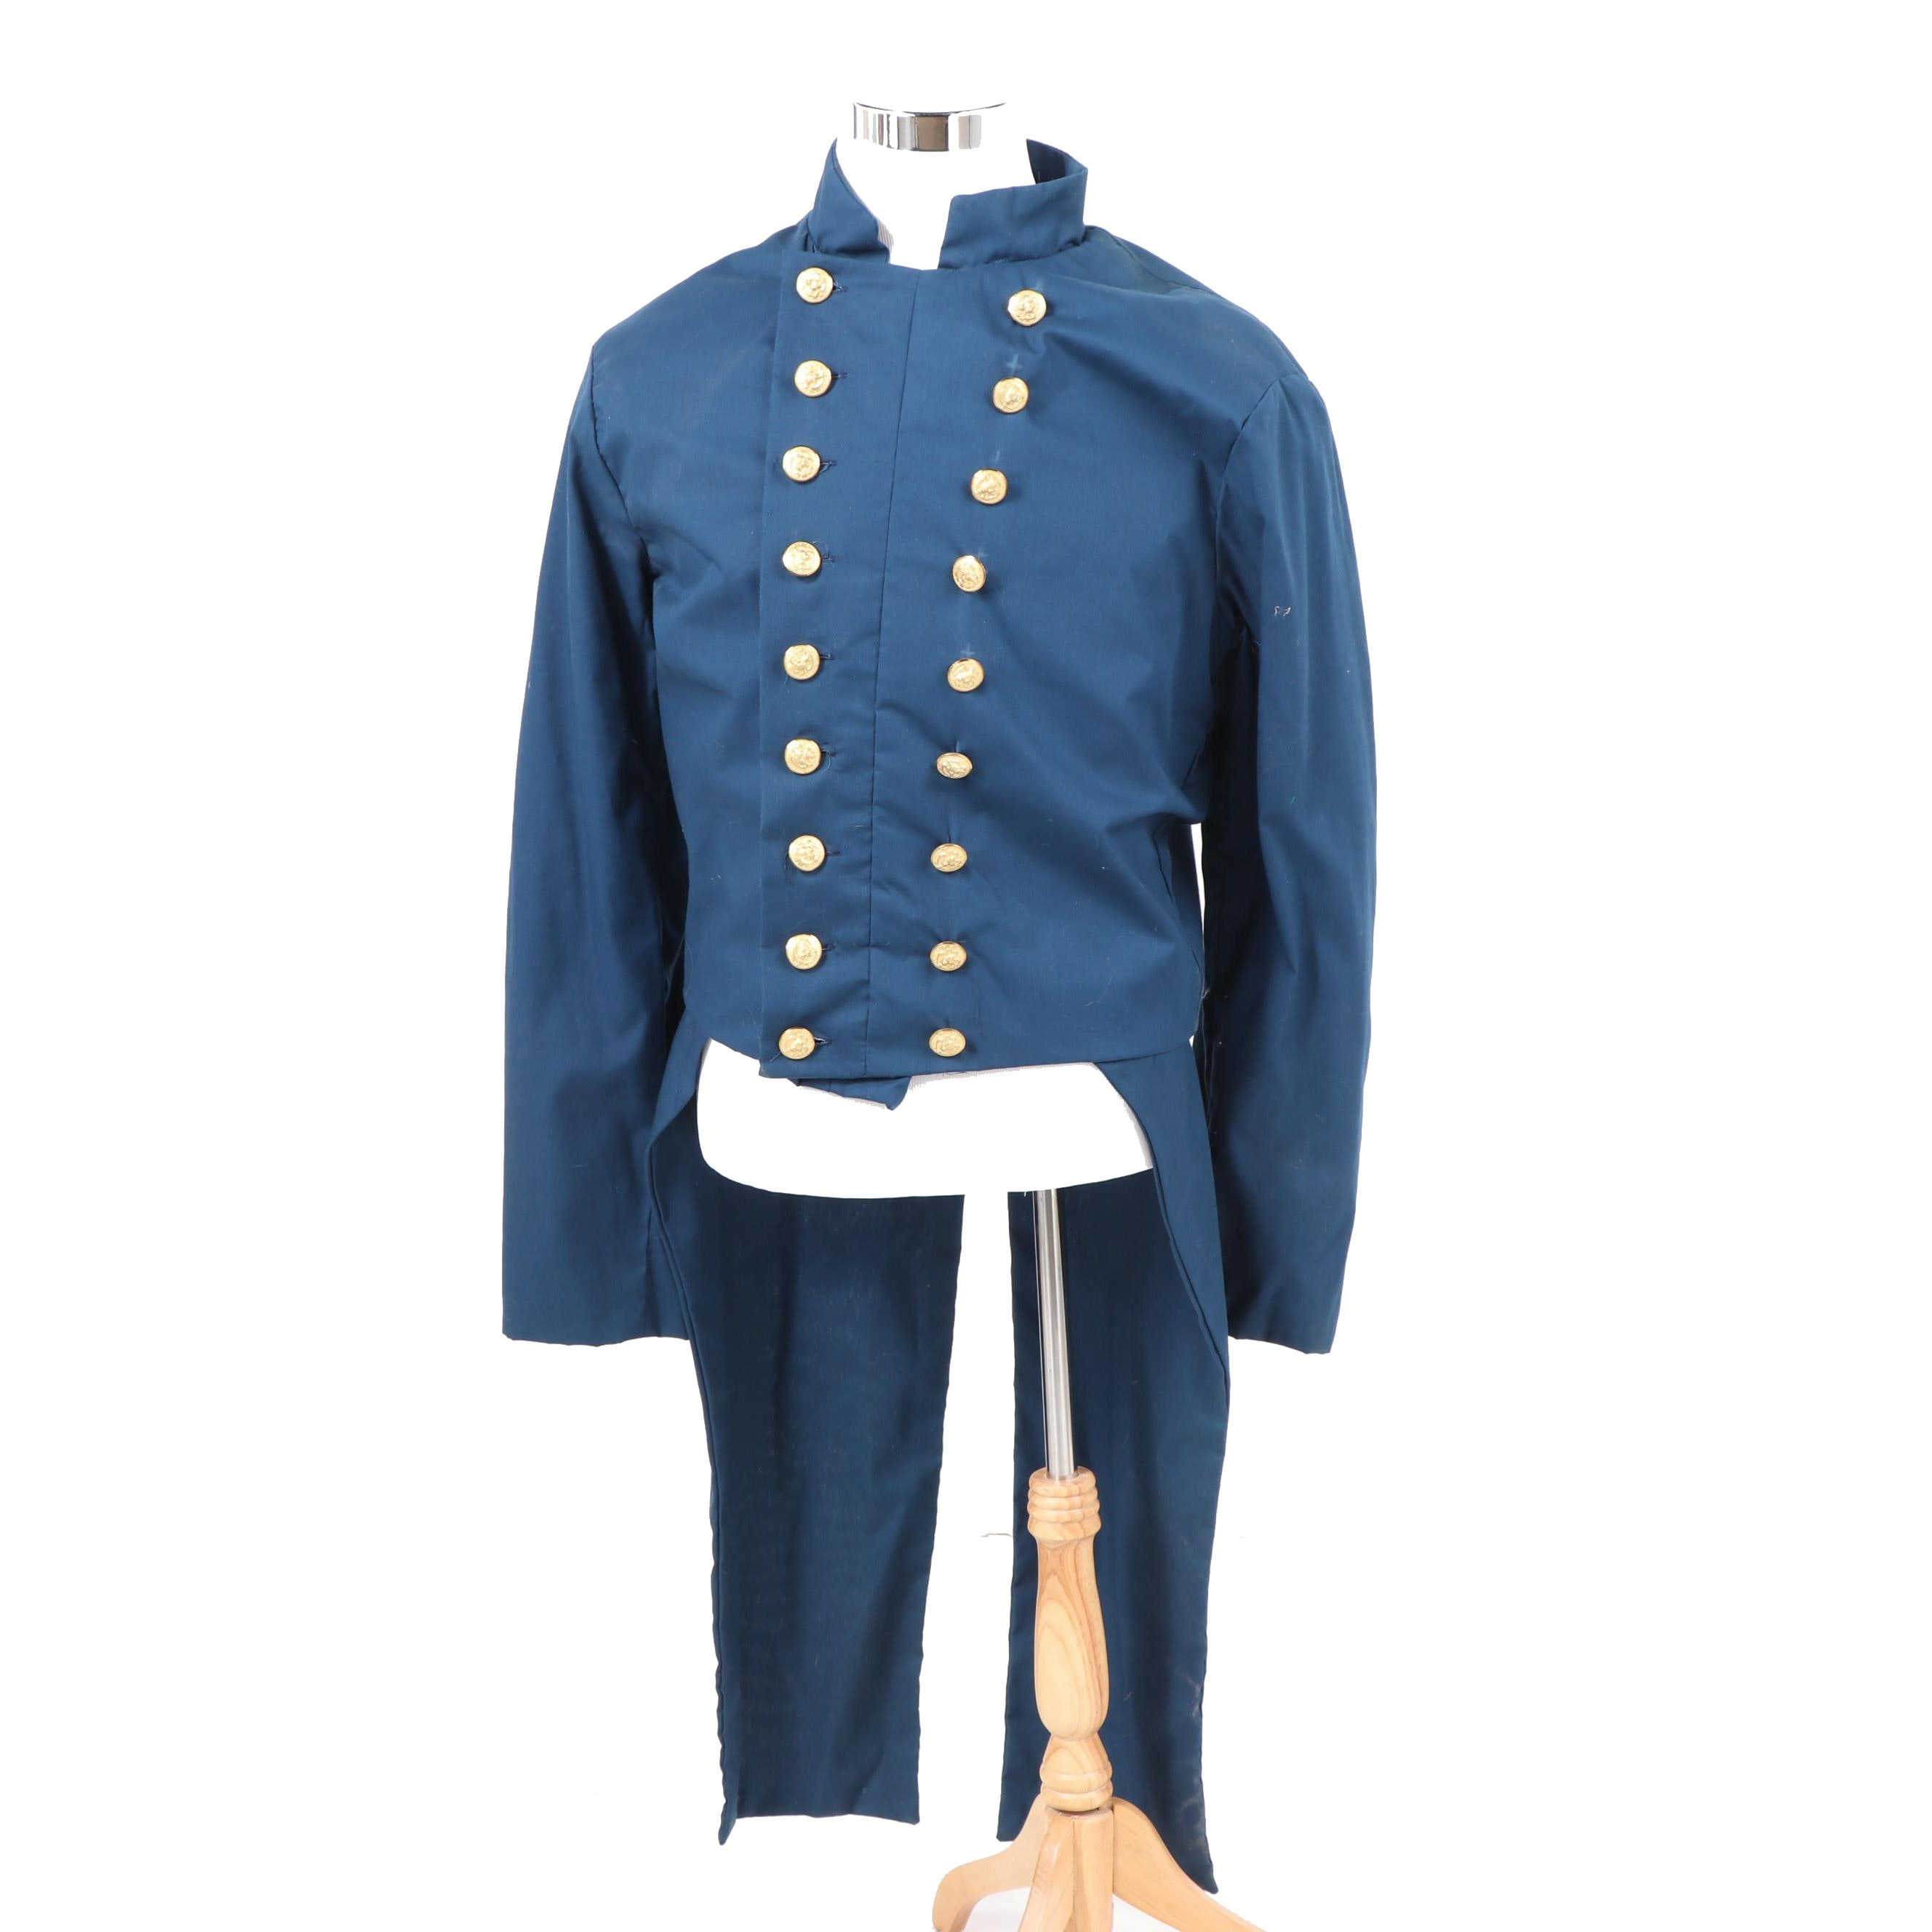 Reproduction Civil War US Navy Officer's Double-Breasted Swallow-Tail Coat